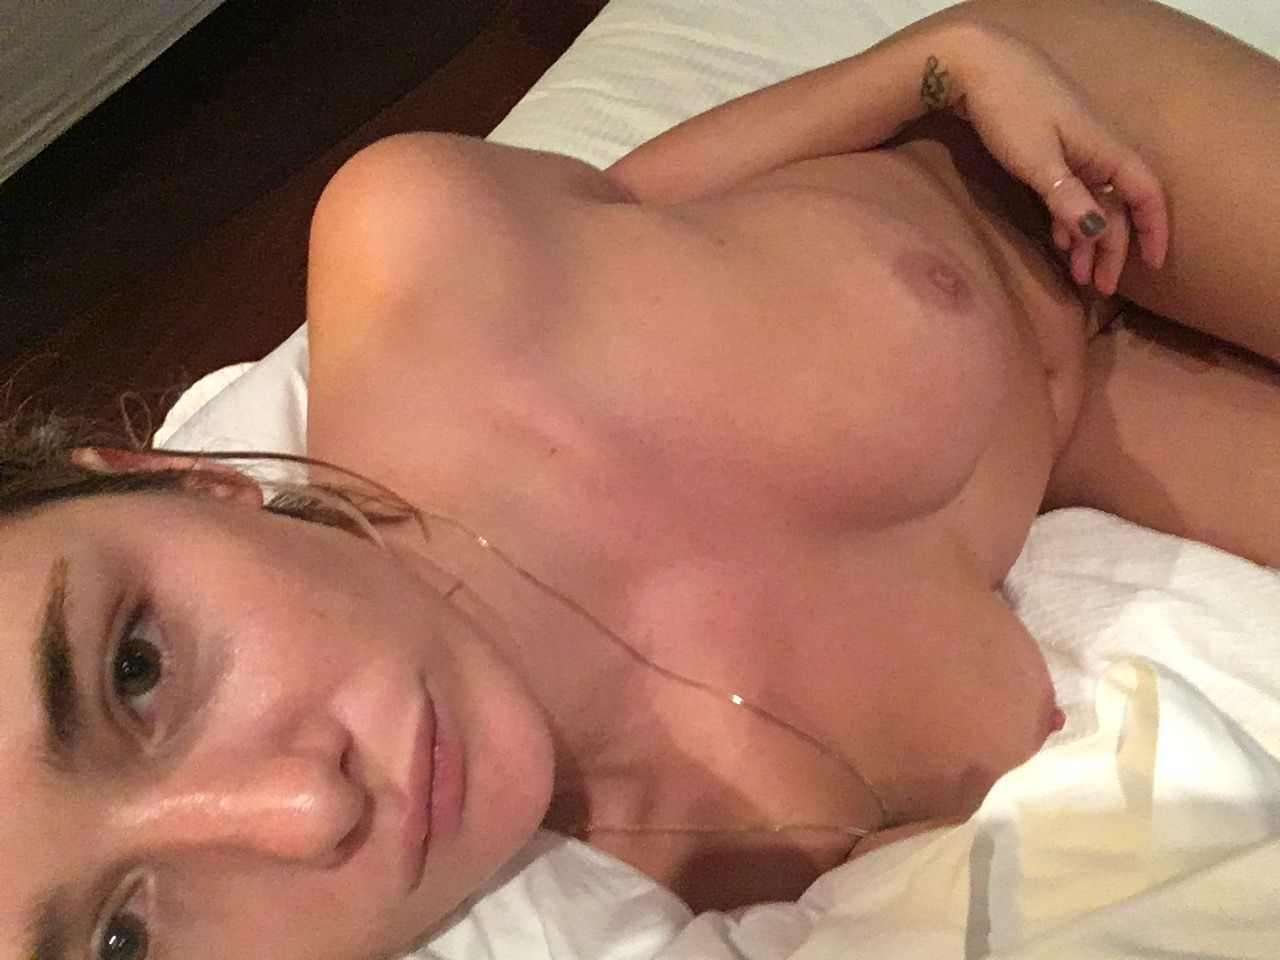 Addison-Timlin-Leaked-1-thefappening_nu_3967782.jpg